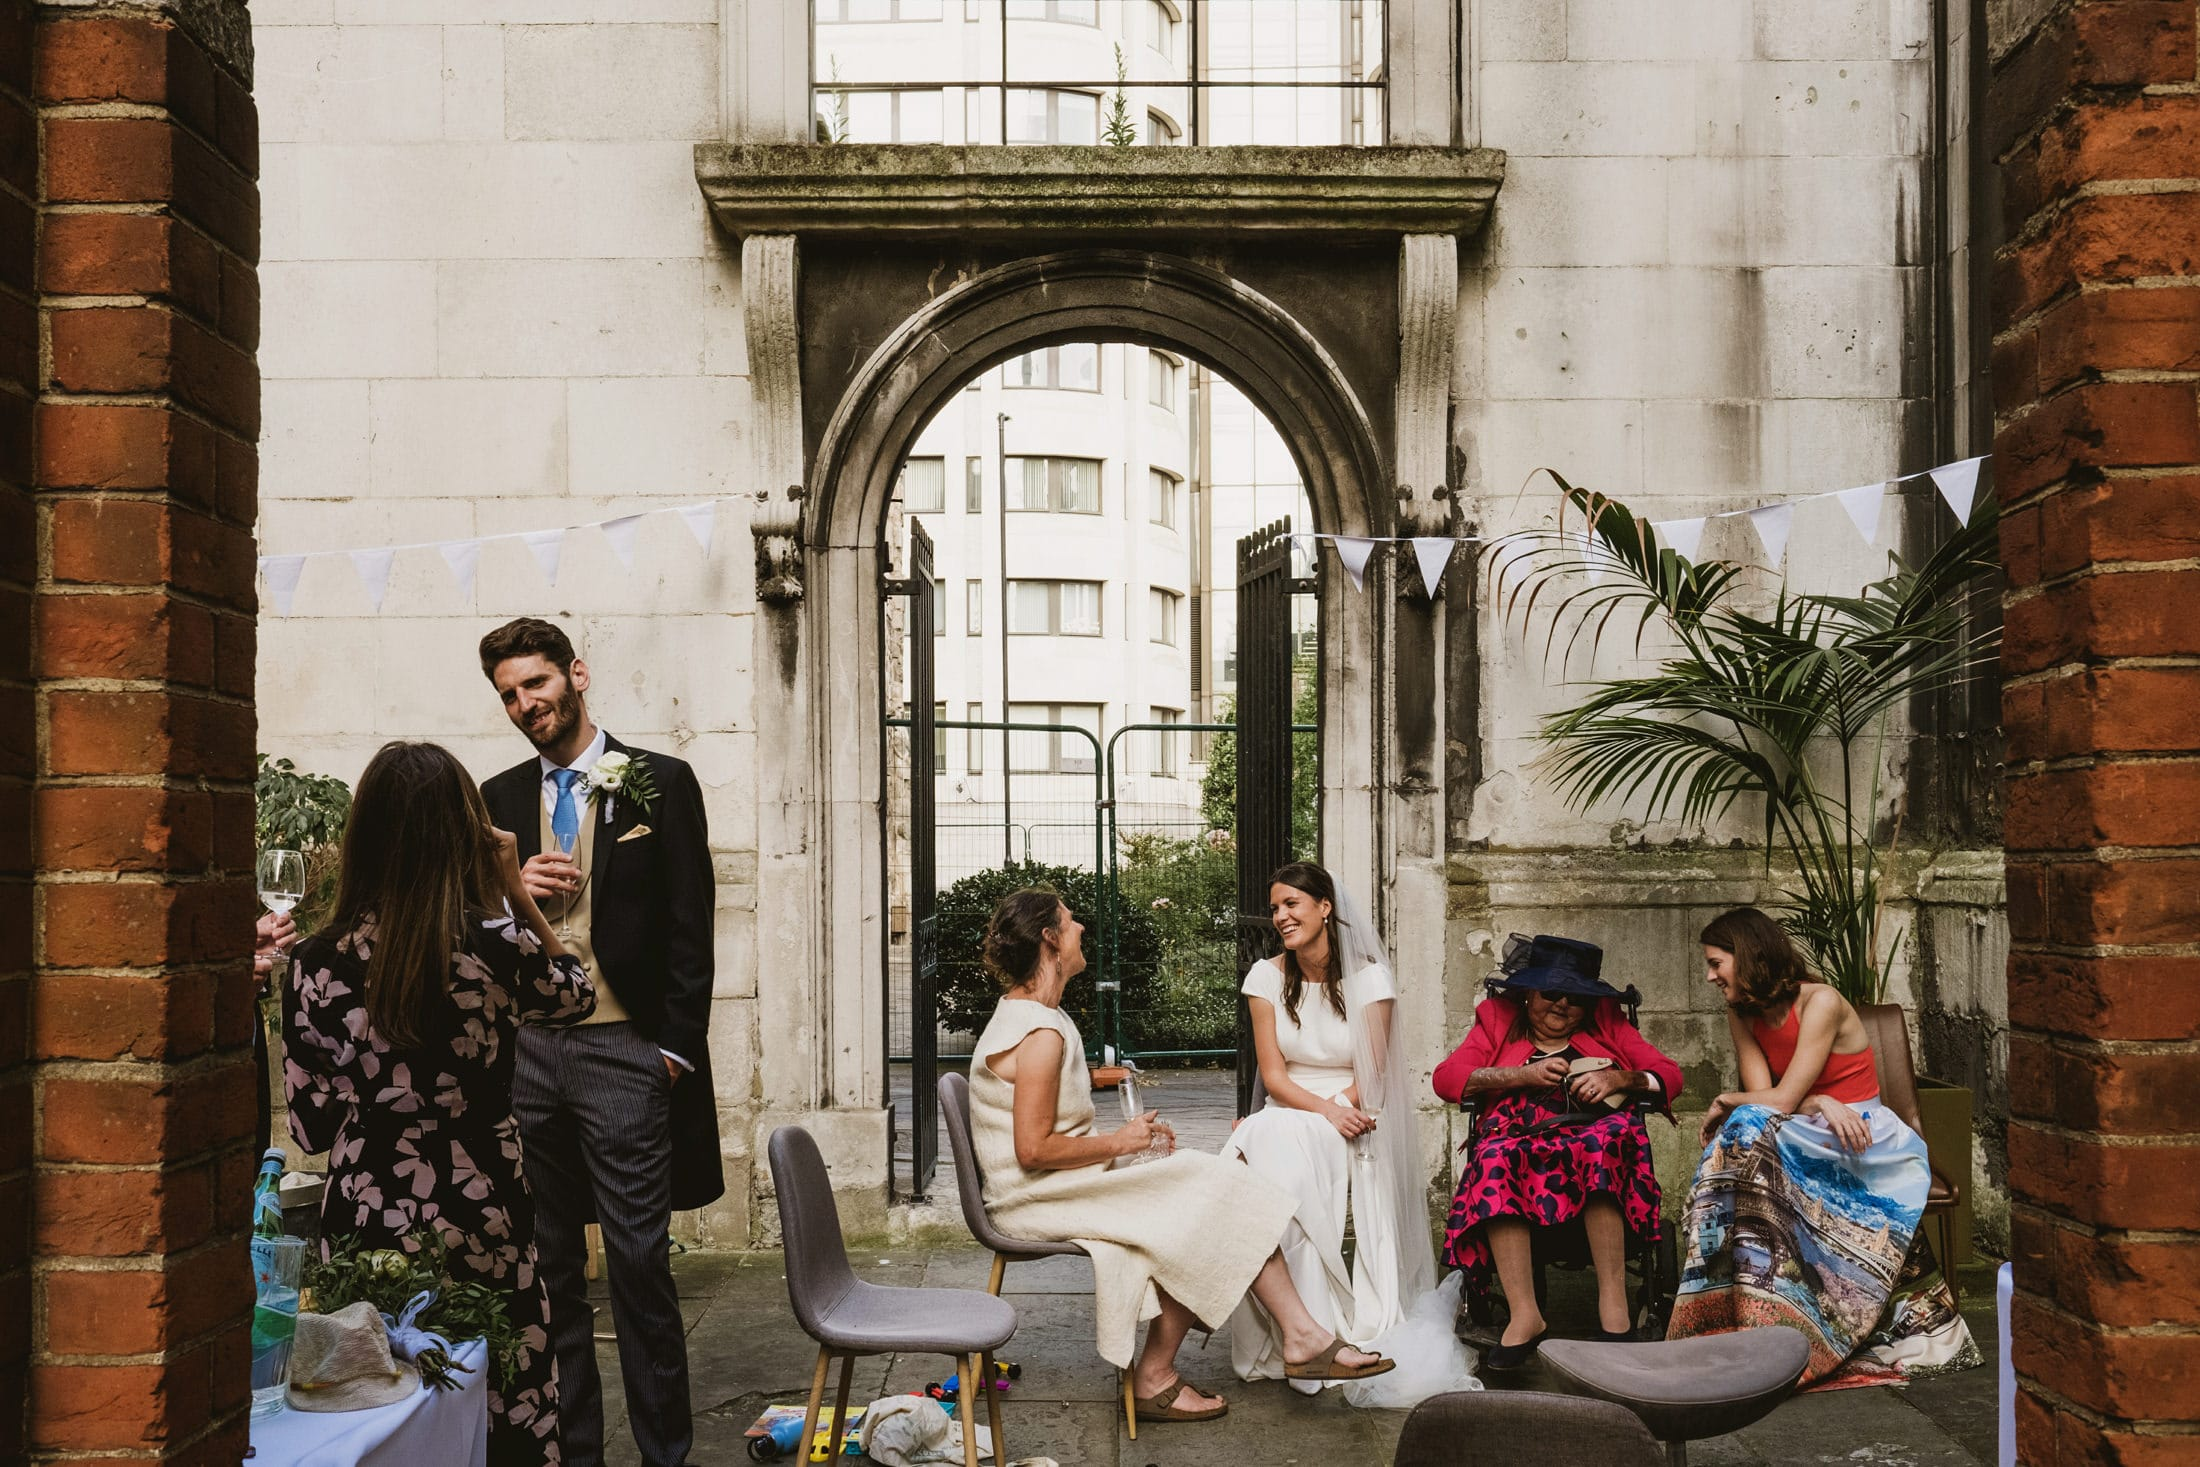 Multiple guests interact with the bride and groom at an intimate London Micro wedding reception. Photo captured at a slight distance, framed by two brick columns either side.